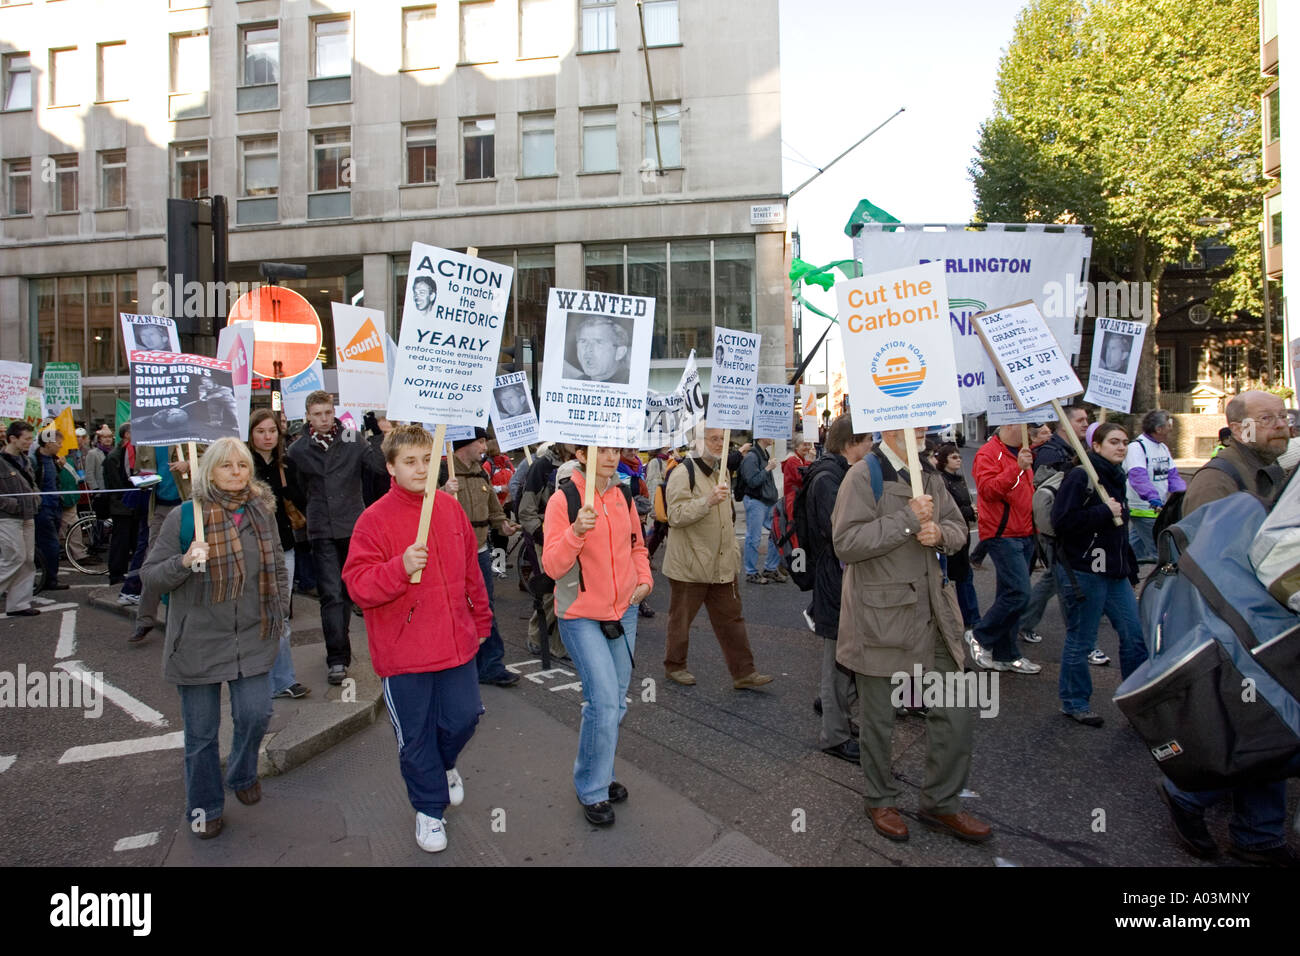 Protesters marching through London carrying Stop Climate Chaos placards on National Rally London 2006 - Stock Image